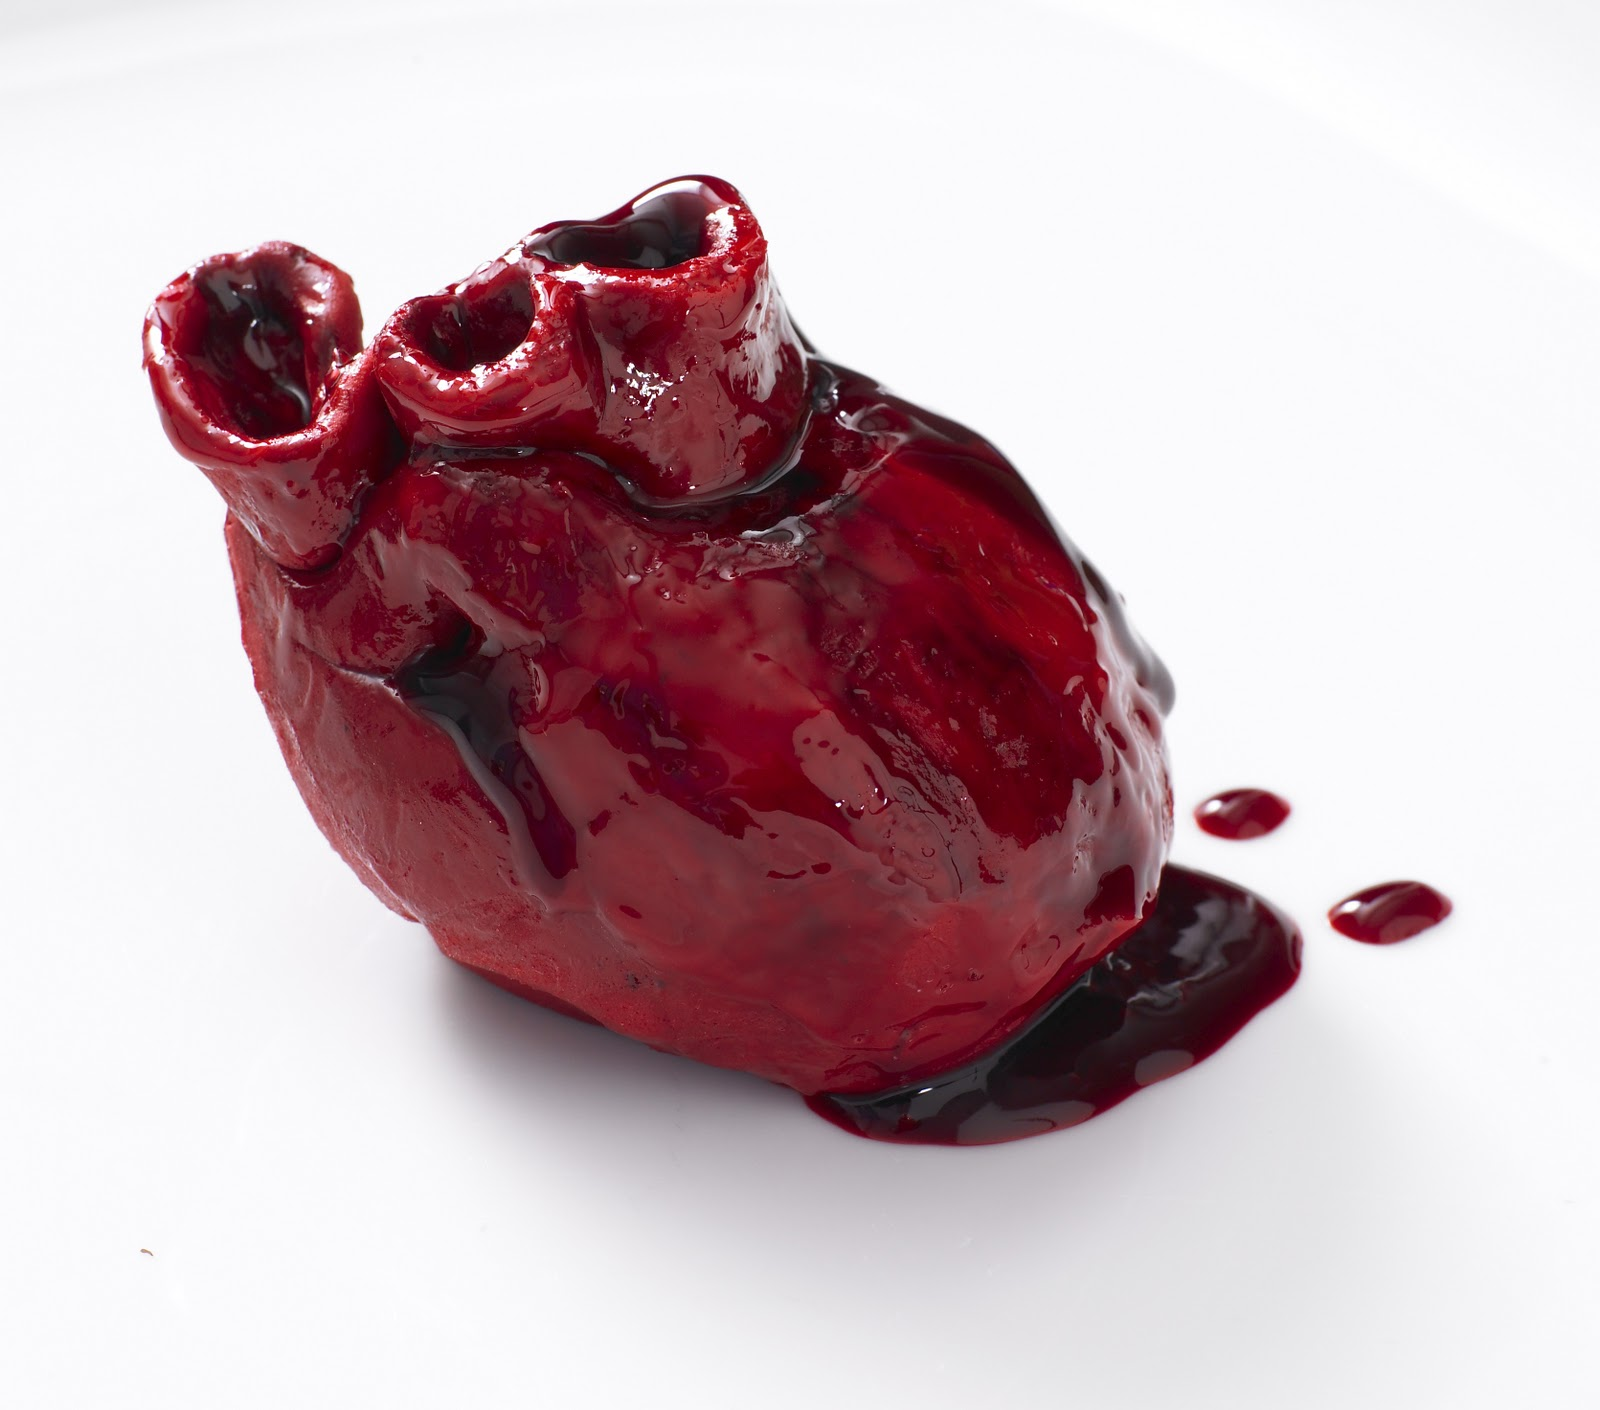 Realistic Cake Images : Bumblr: Edible Realistic Bleeding Heart Cakes for ...